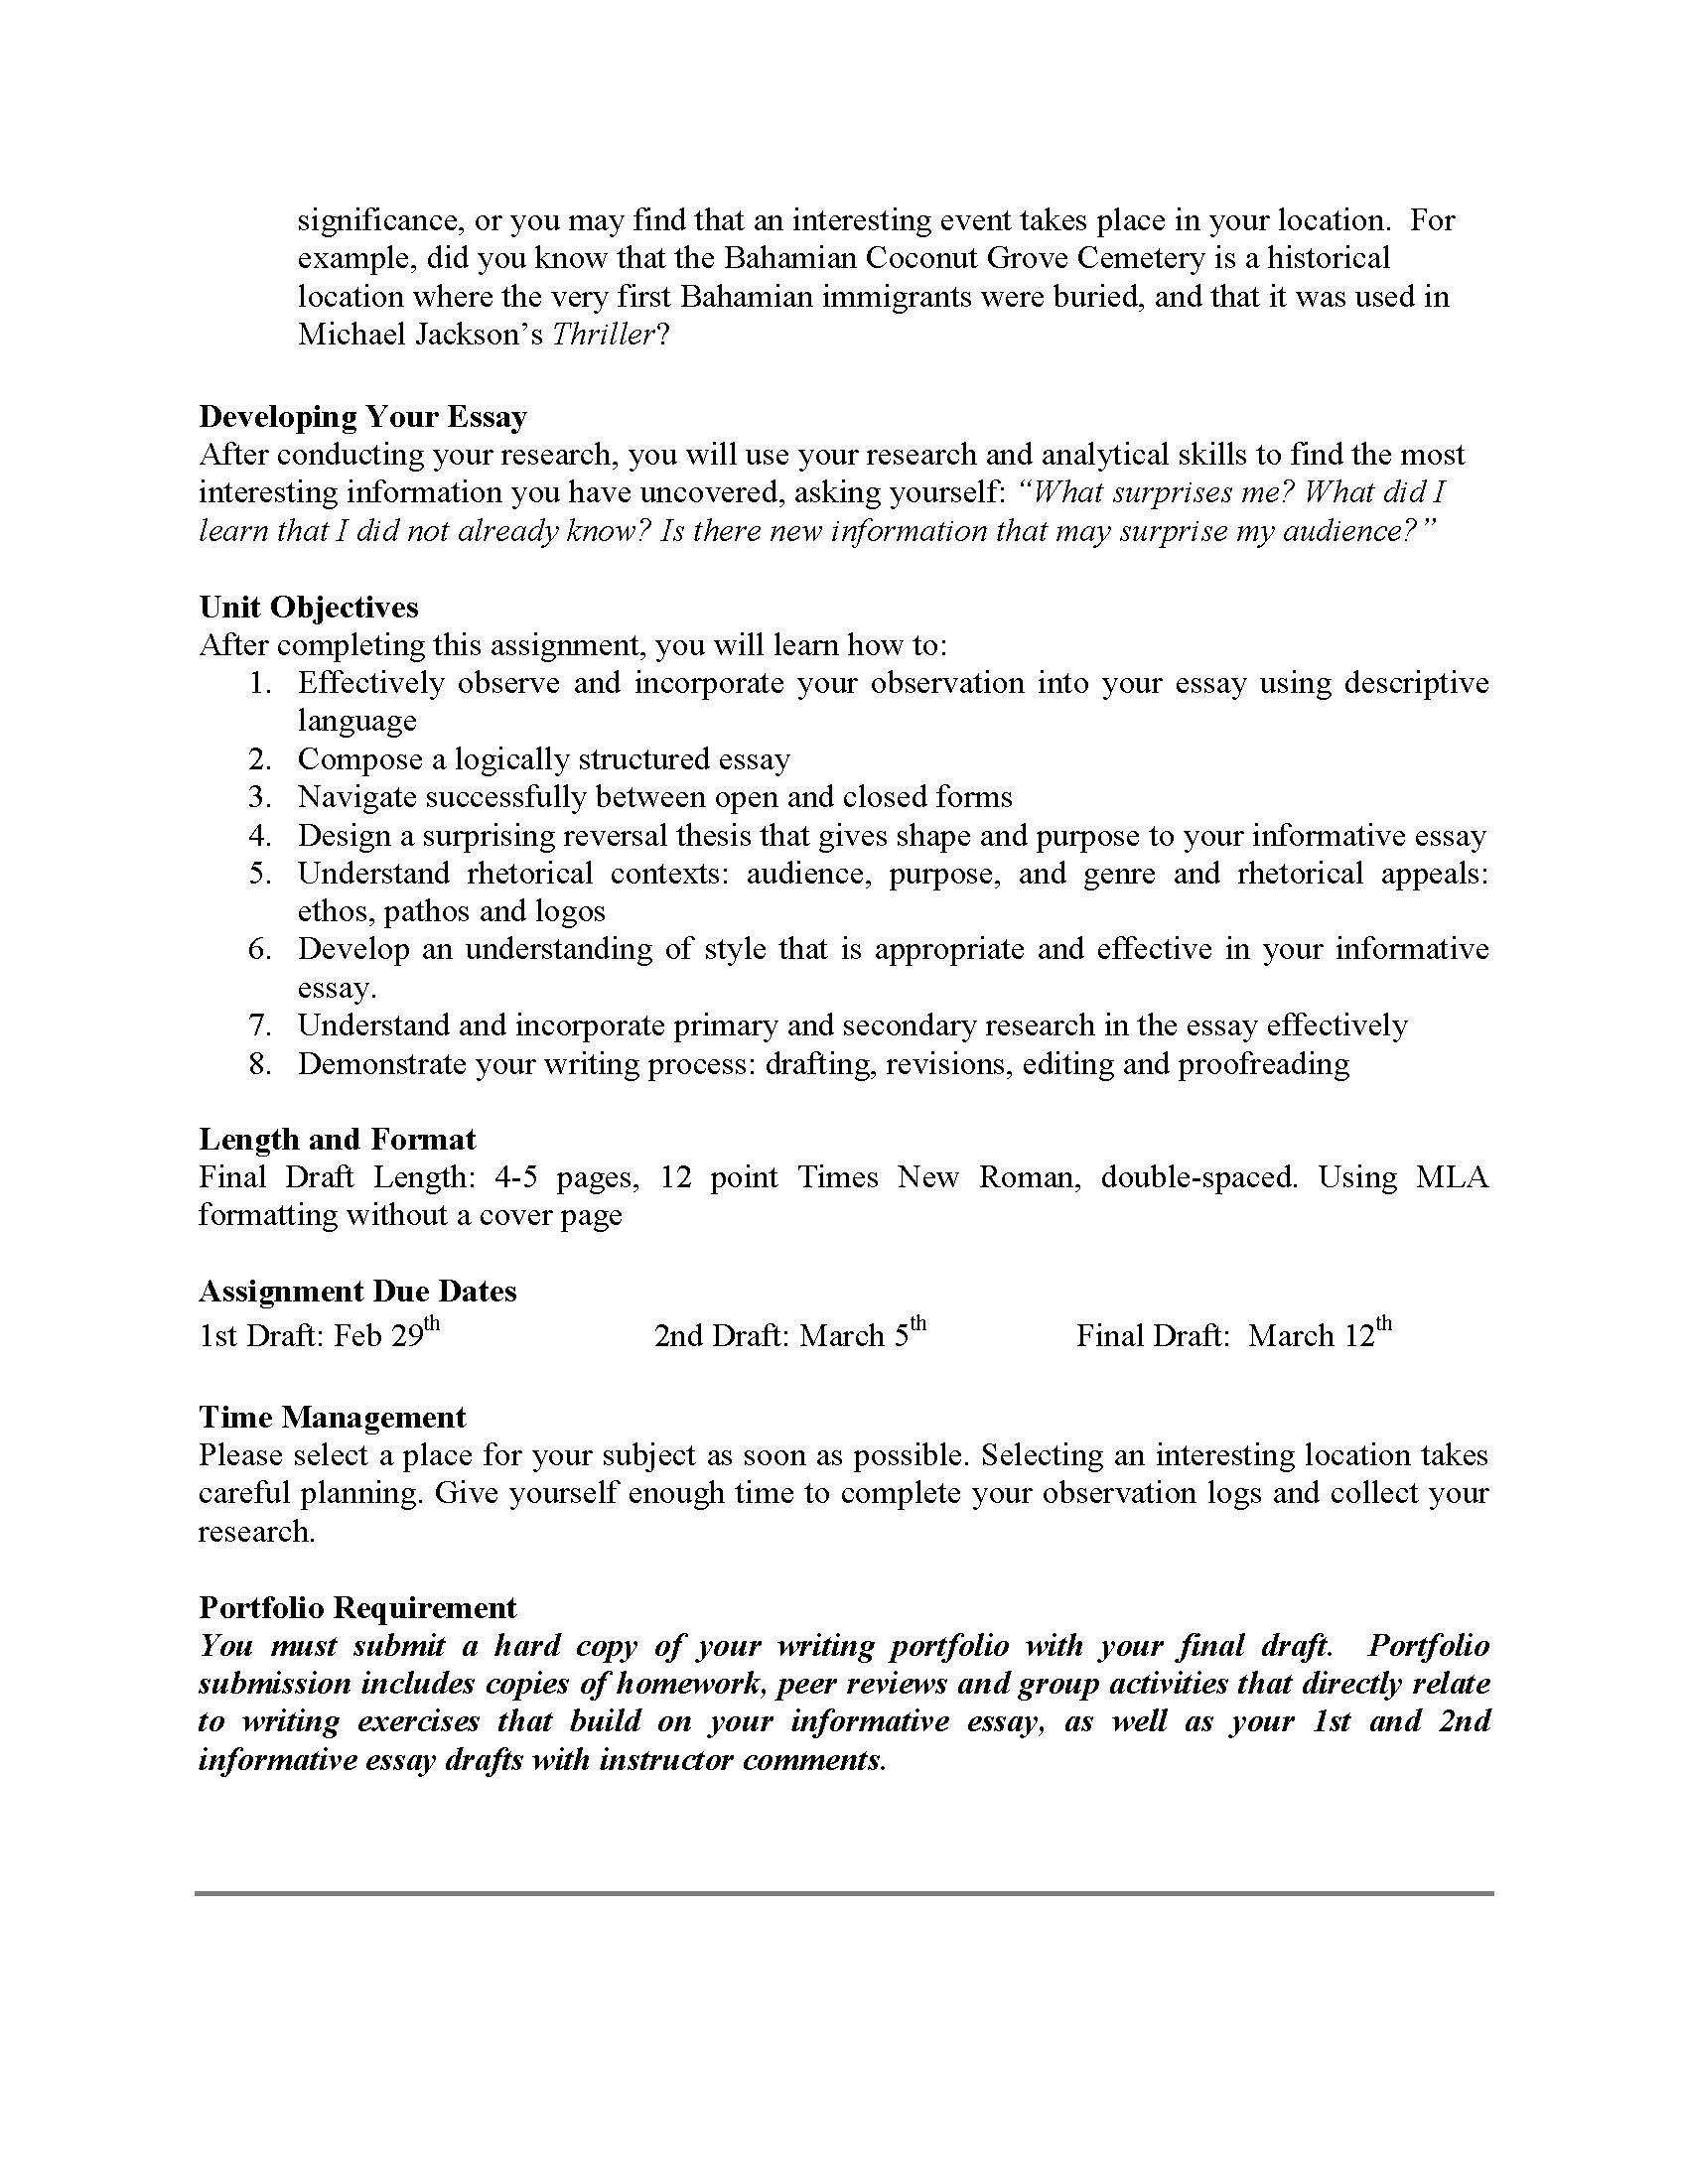 014 Informative Essay Unit Assignment Page 2 Dreaded Outline Template Pdf Topics For 5th Grade Rubric Fsa Full